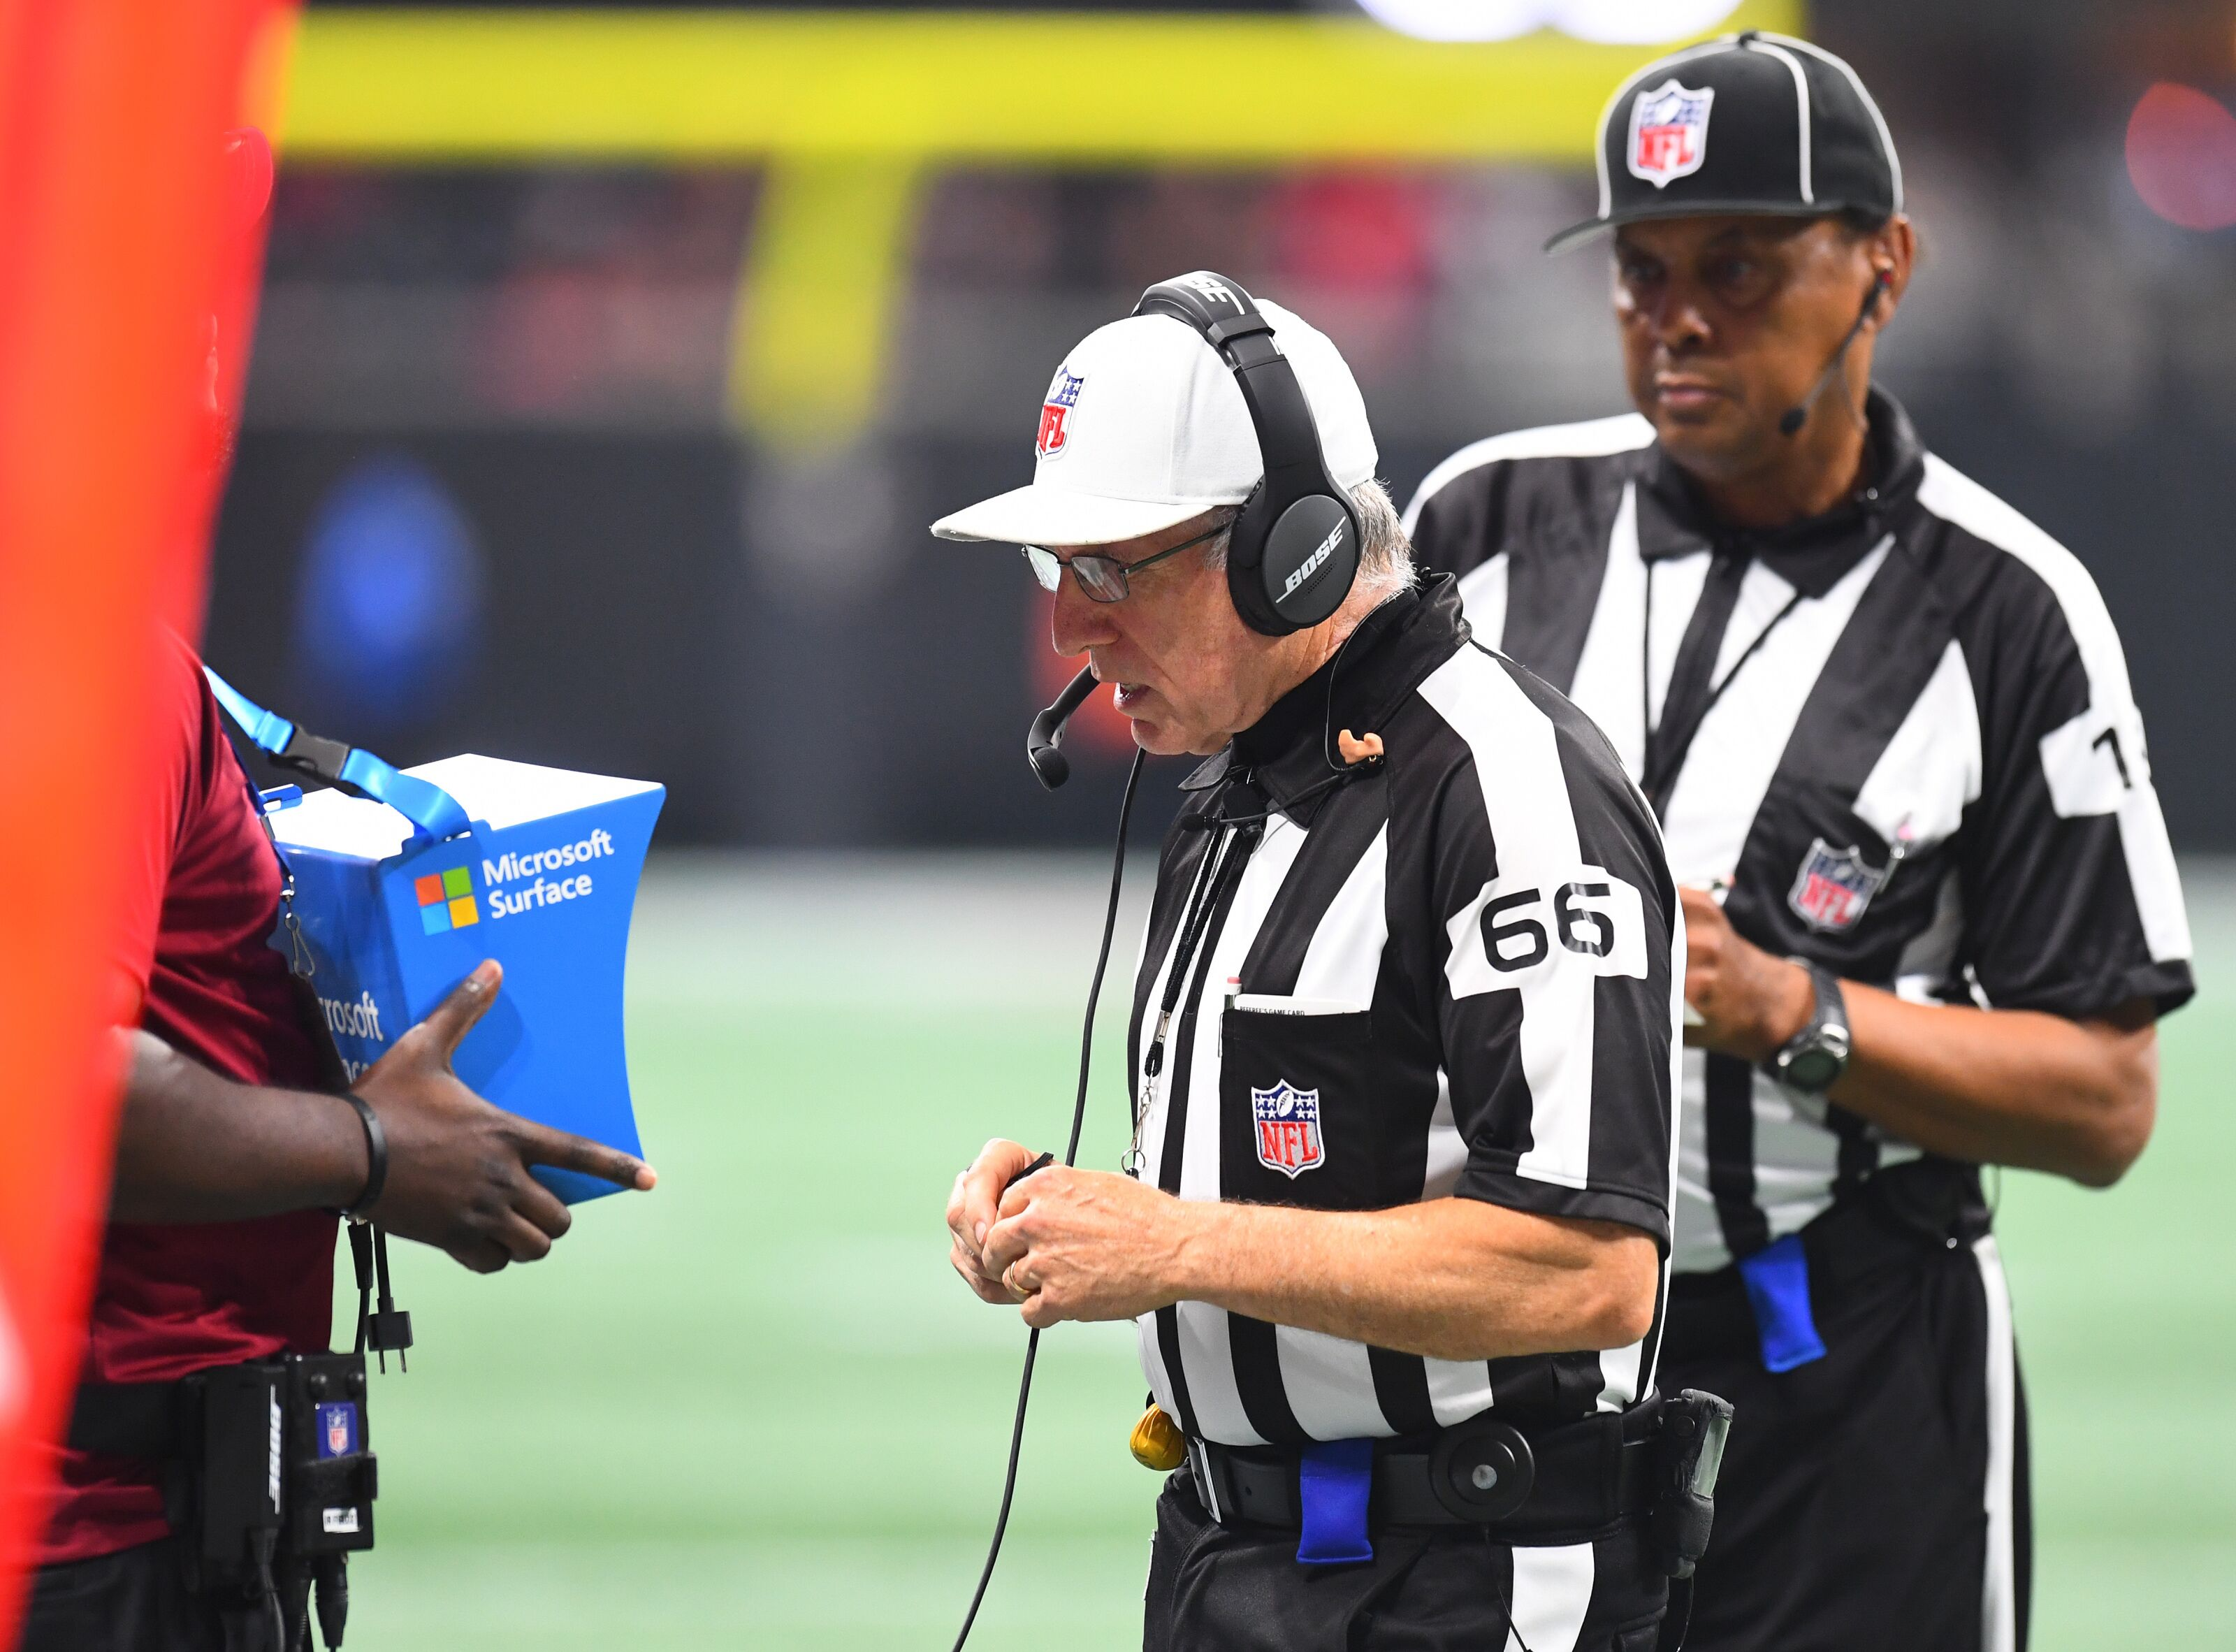 NFL needs to fix their officiating problem and allow reviews on everything